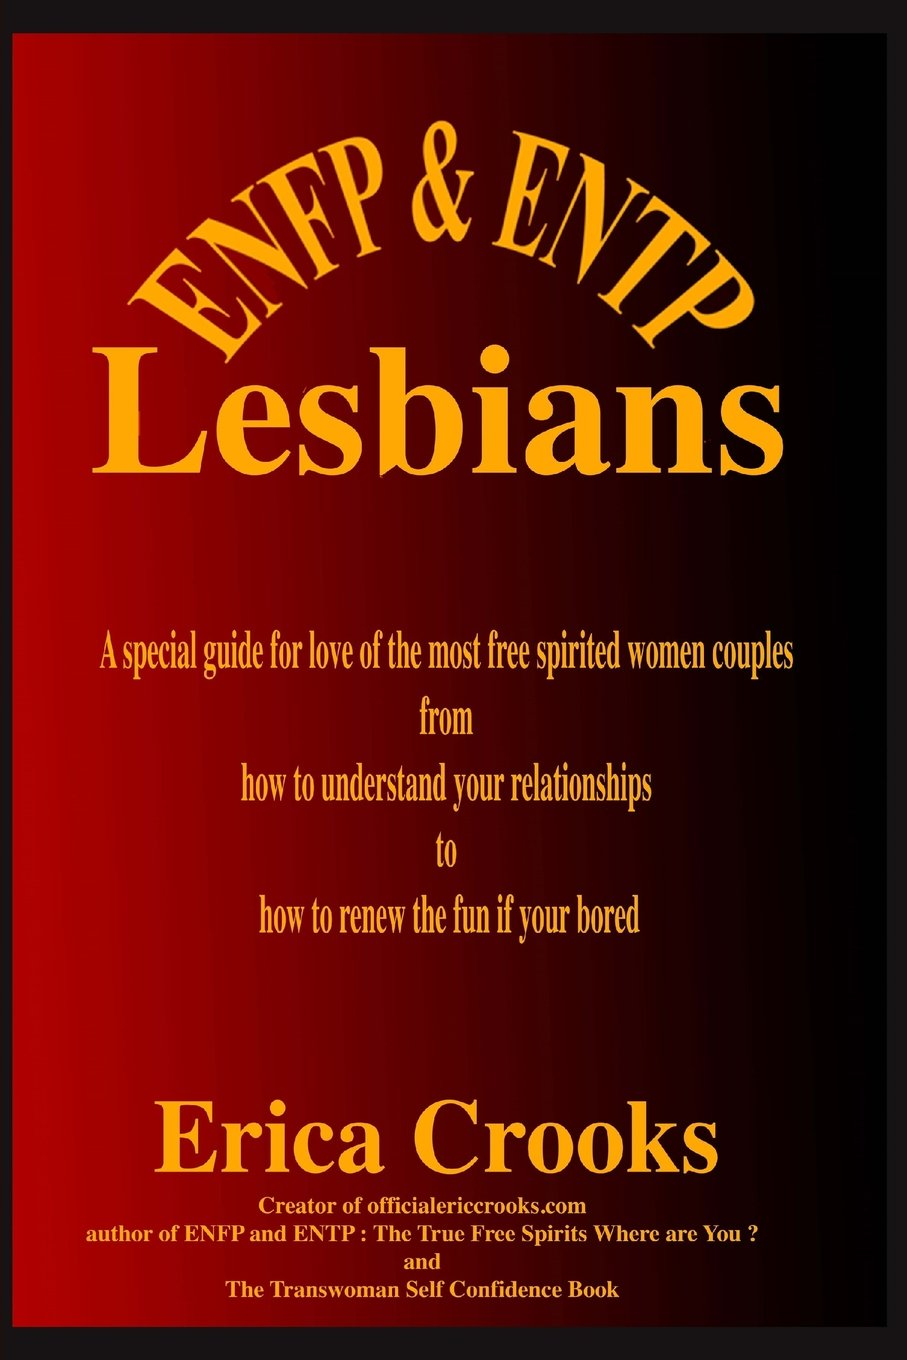 ENFP and ENTP Lesbians: A special guide for love of the most